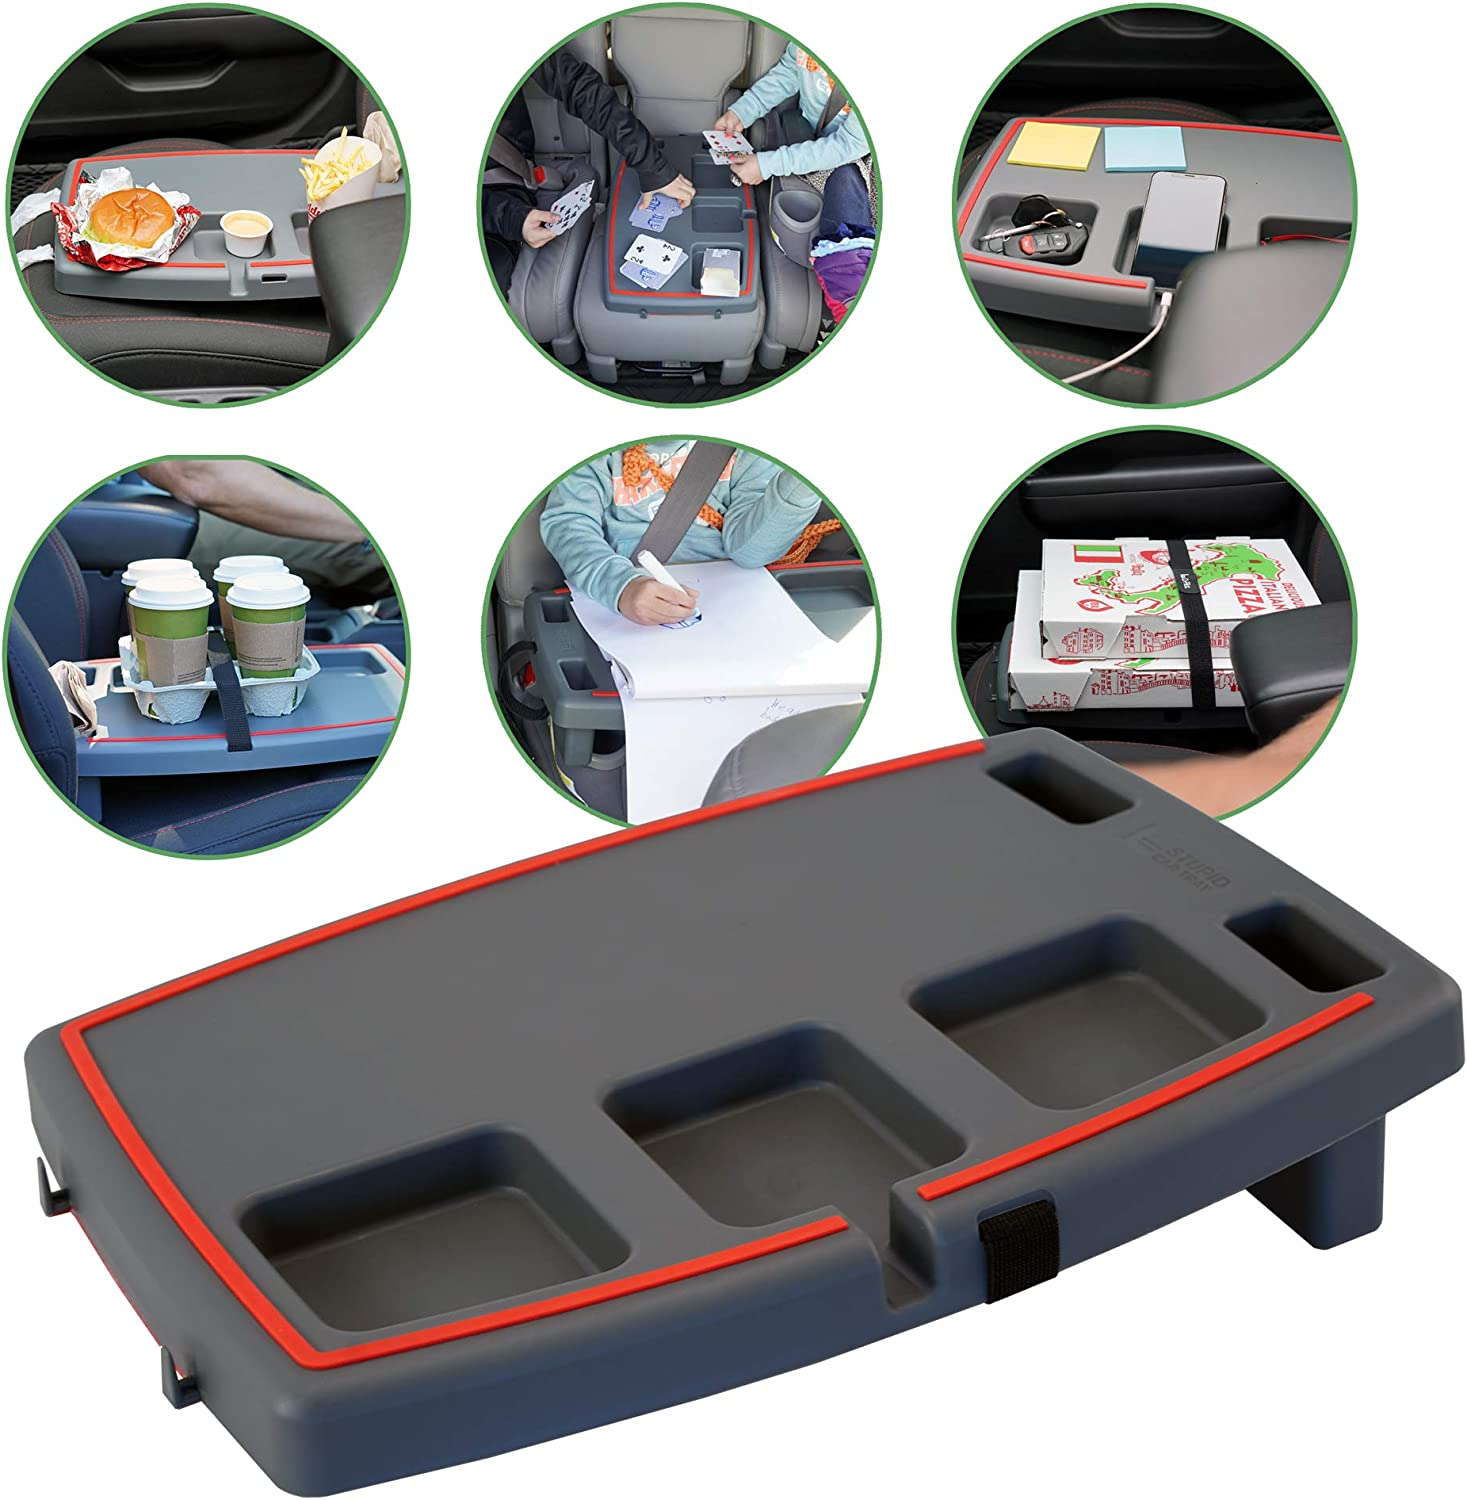 Stupid Car Tray Personal Passenger Seat Multi Function Anti Slip Rubber Food and Drink Travel Organizer Tray, Gray/Red